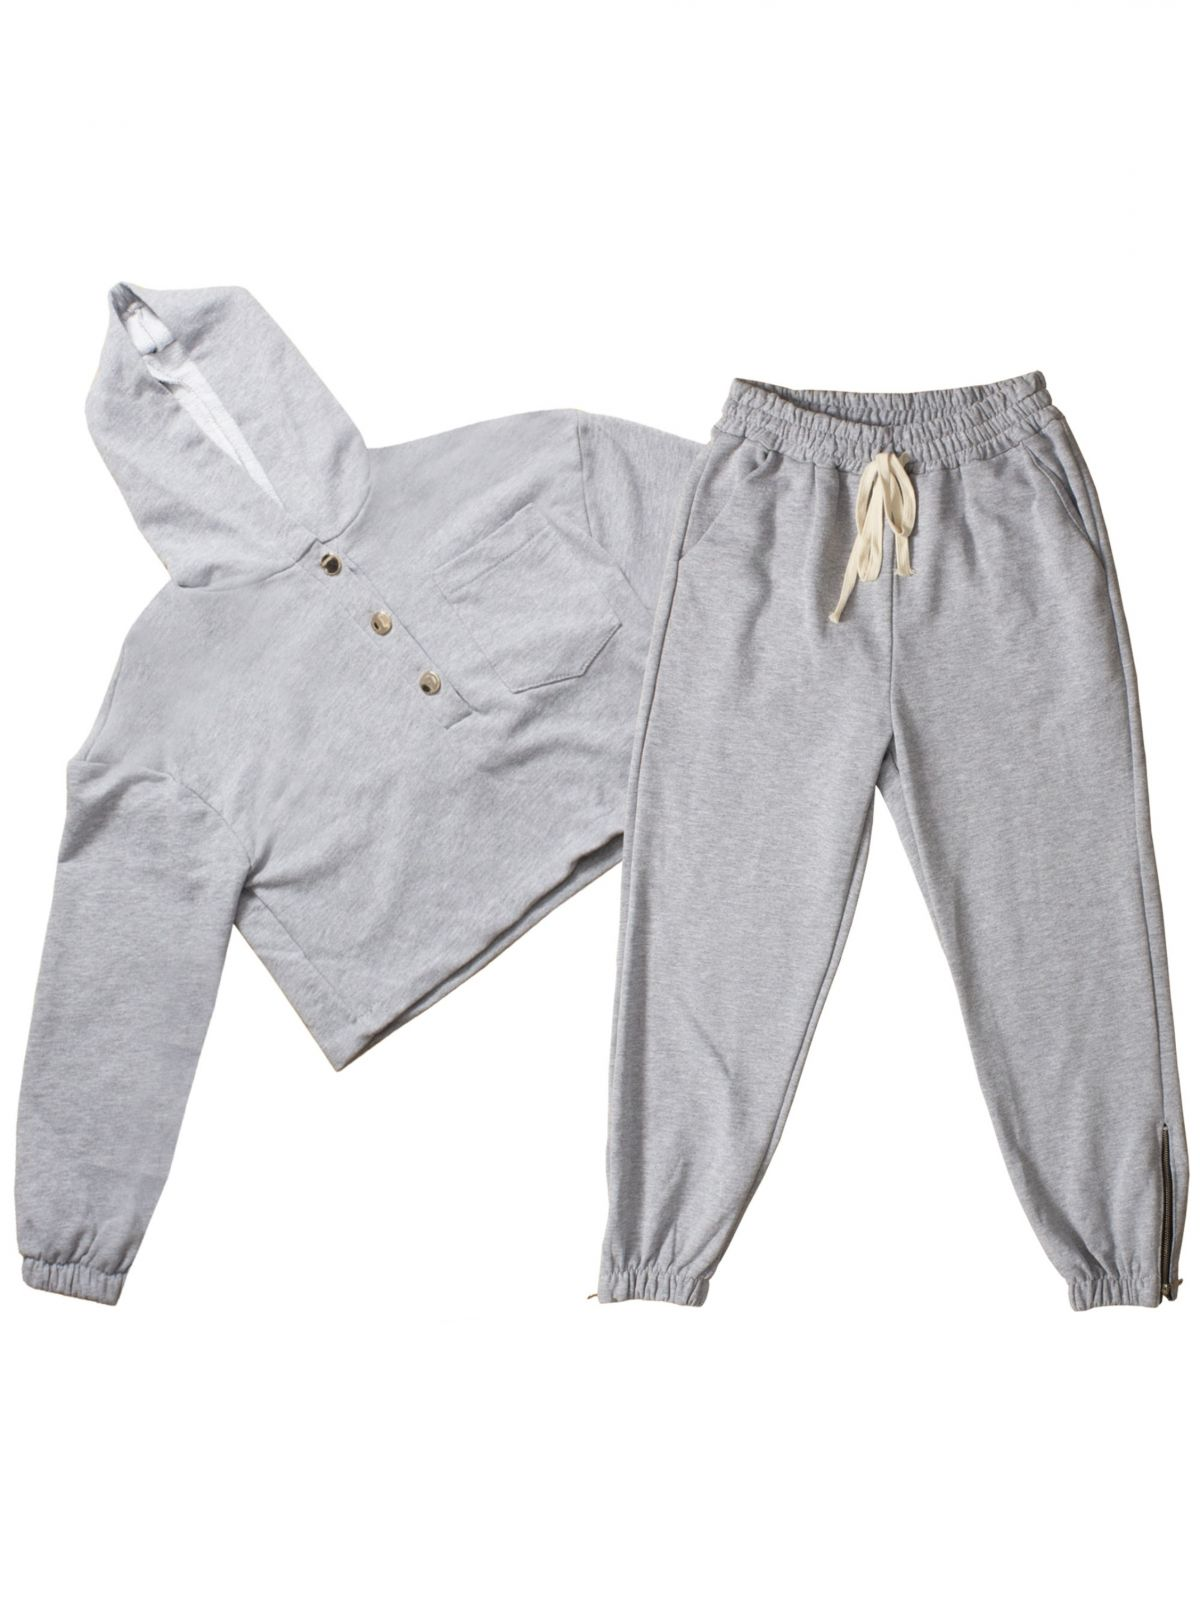 Womens Designer Oversized Tracksuit Set | Metal Button Hoodie Ankle Zip Joggers